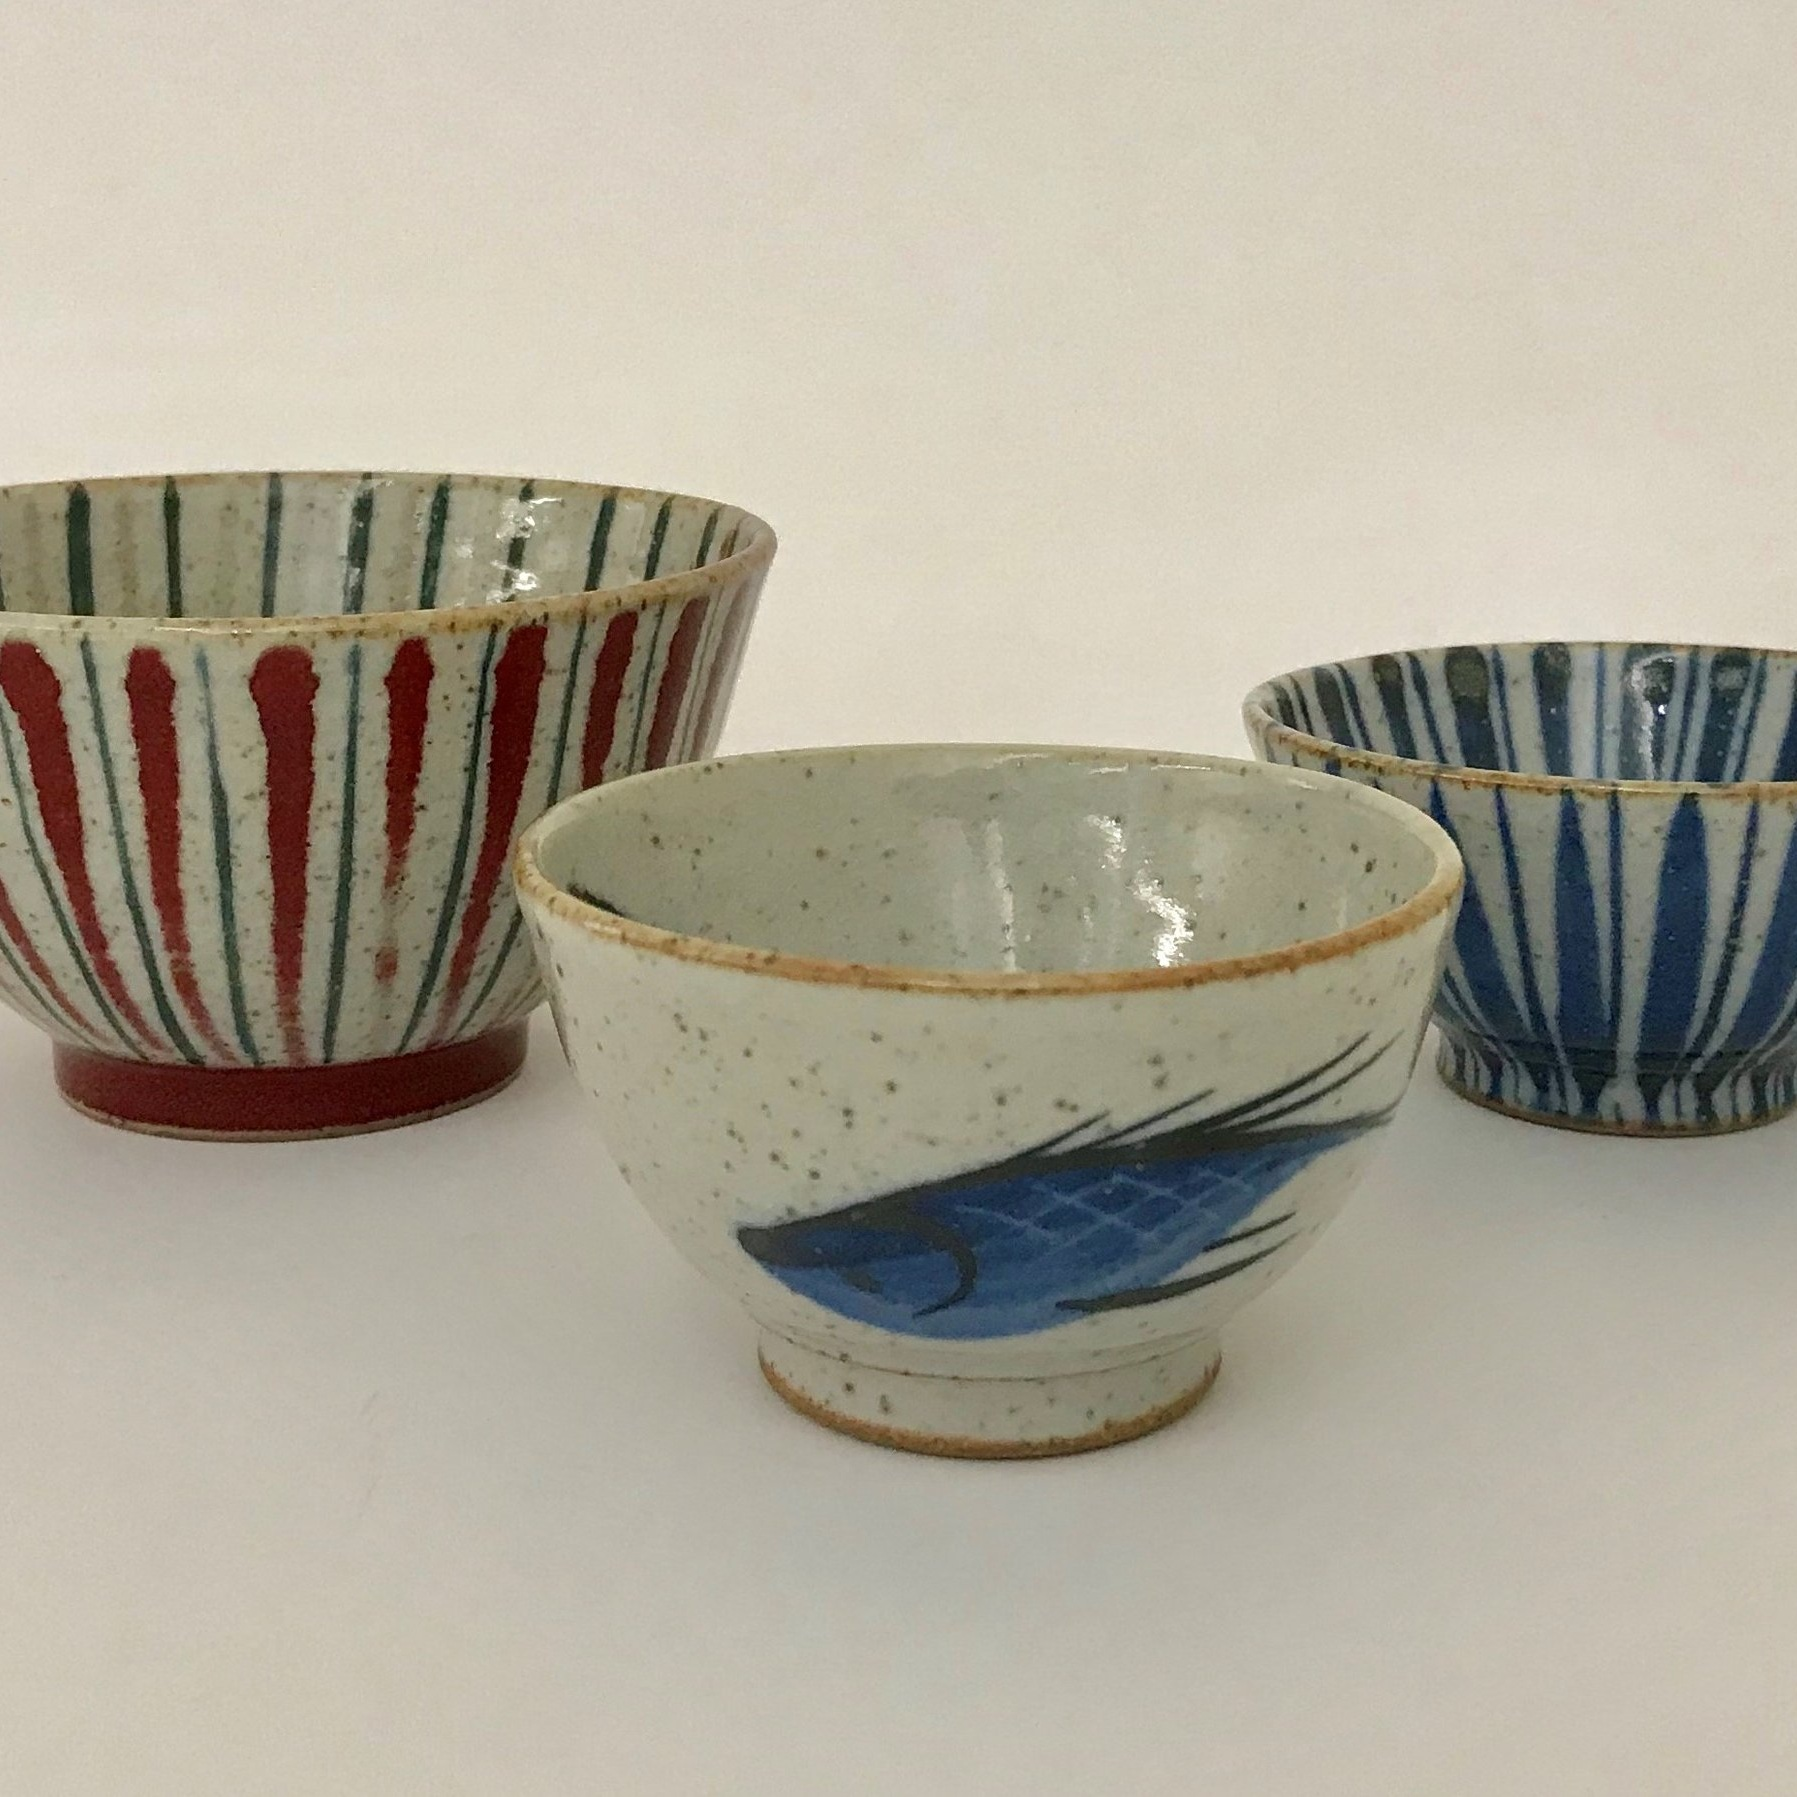 Olive Bowl £22.50   Mini Olive Bowls £16